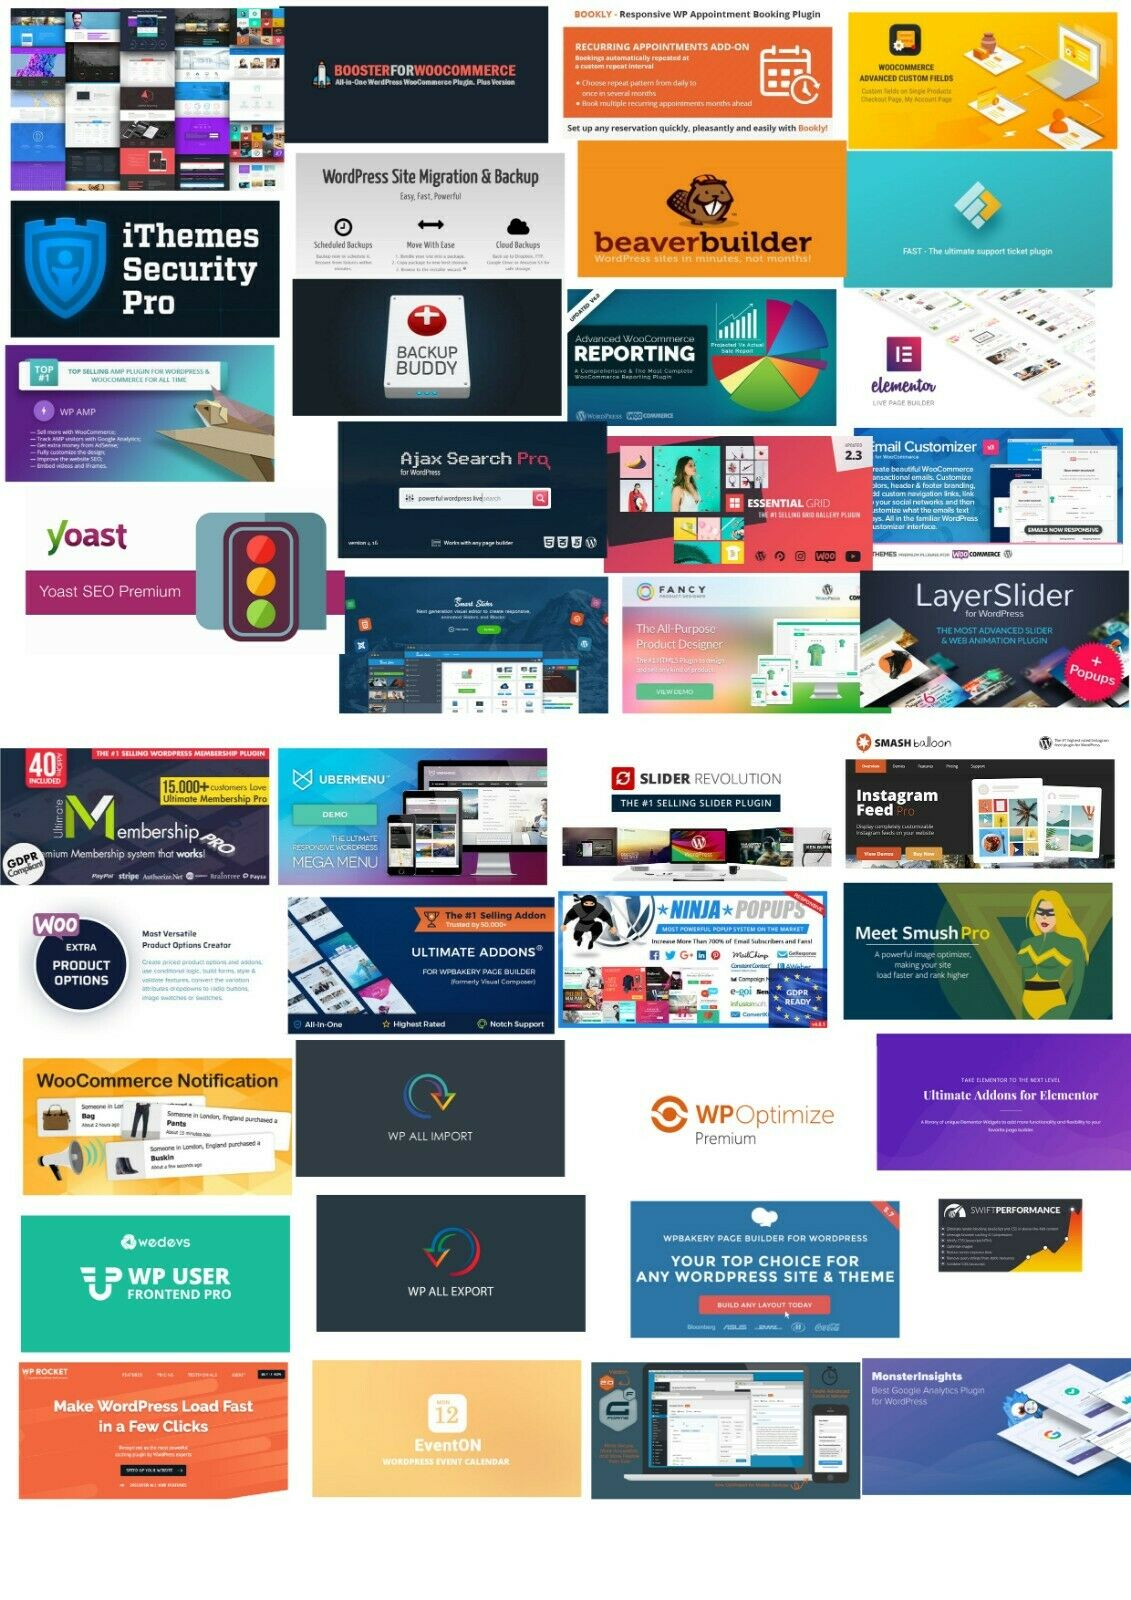 TOP 40 WORDPRESS AND WOOCOMMERCE PLUGINS - UNLIMITED USE!! - FREE UPDATES!! 2